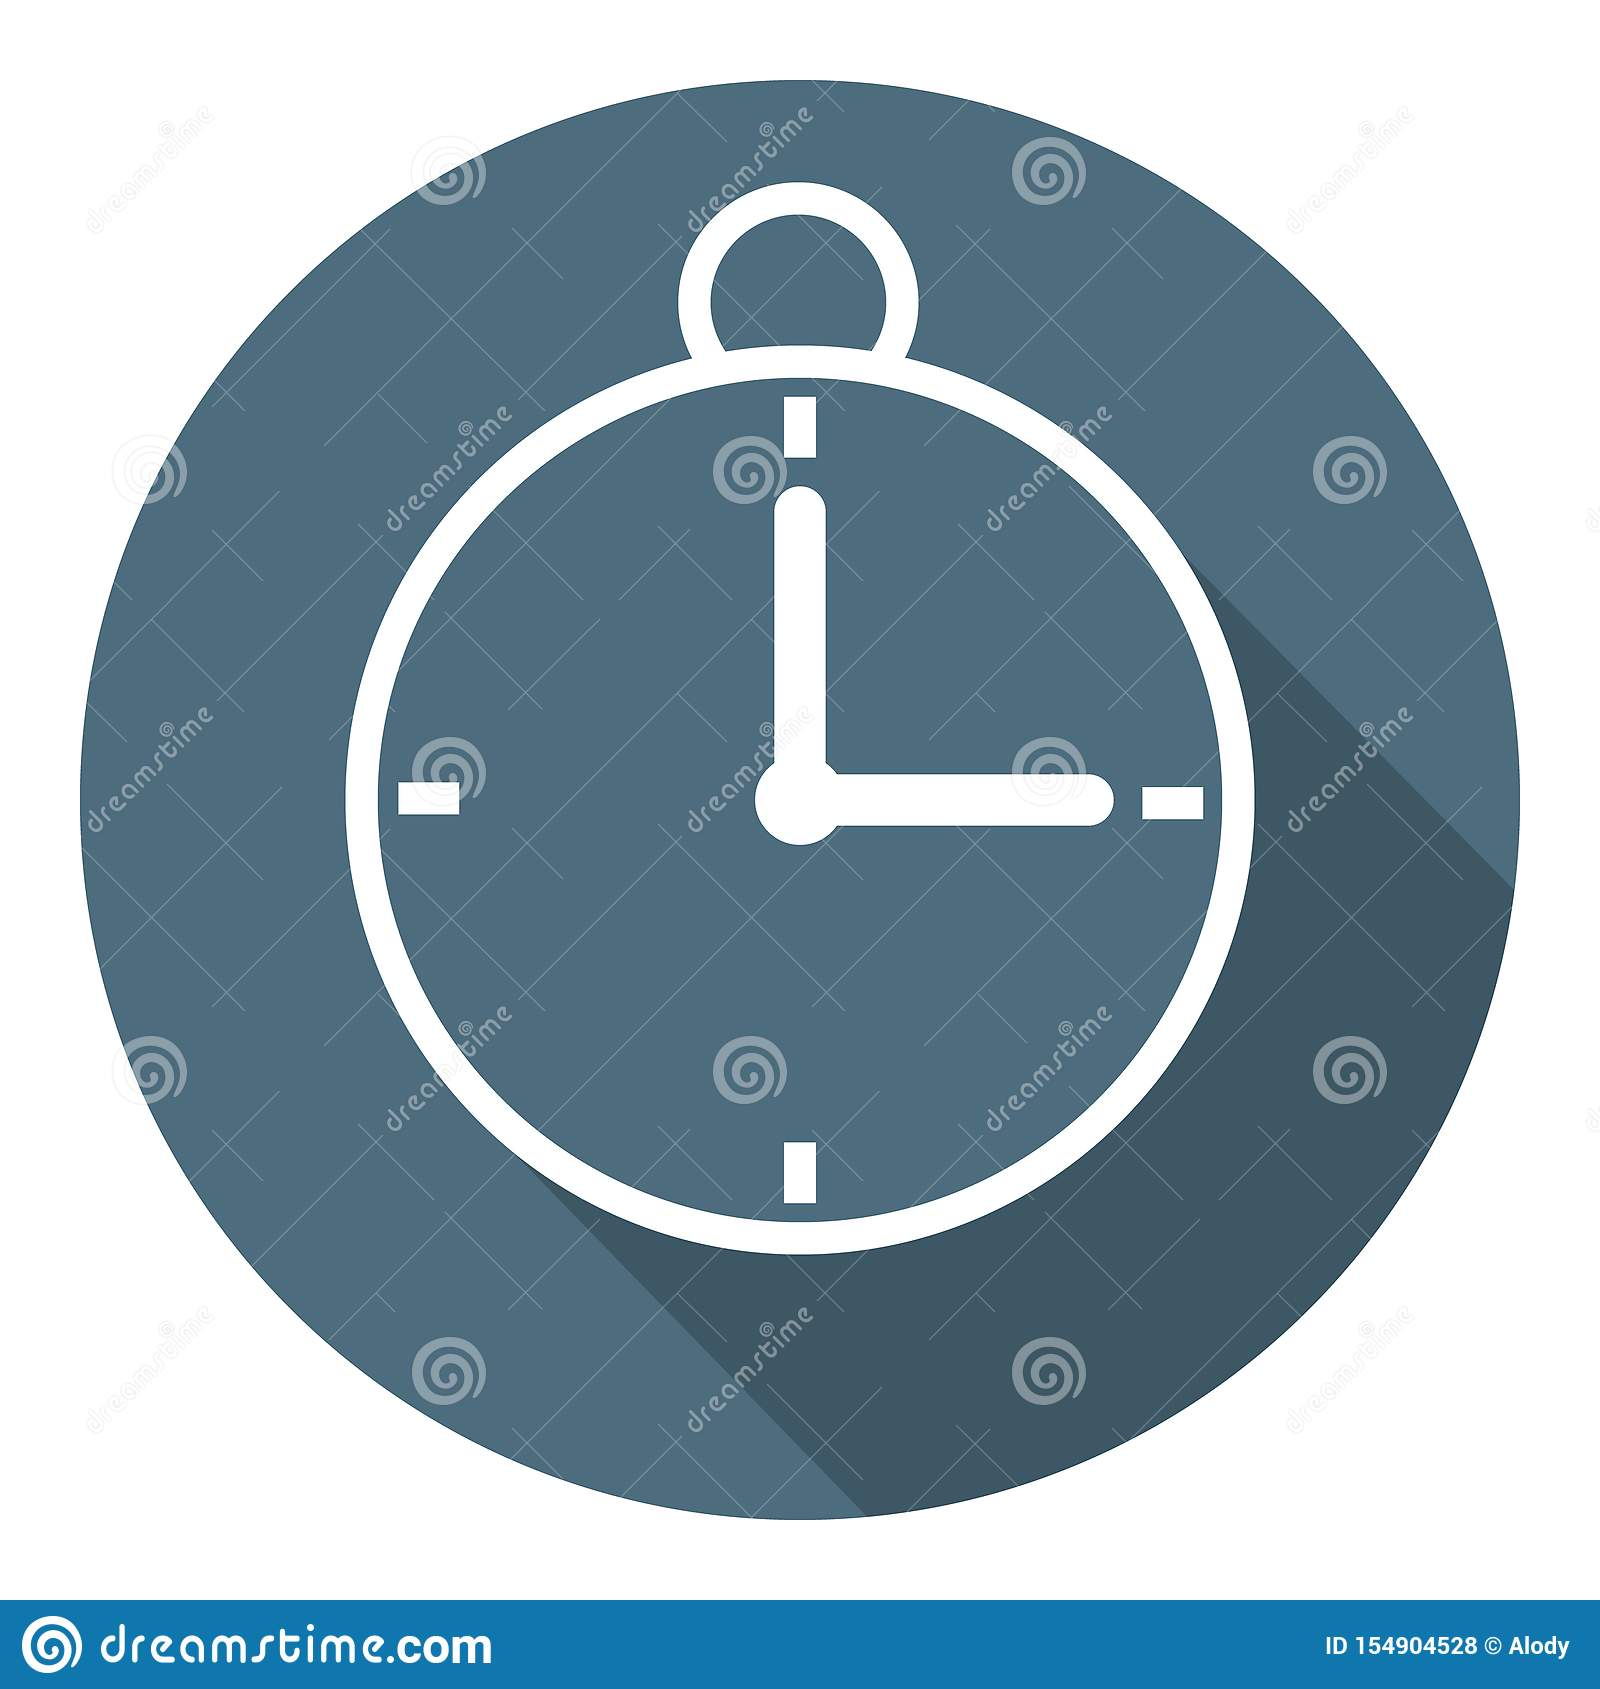 Stopwatch Icon. Time Symbol. Outline Flat Style. Vector illustration for Your Design, Web